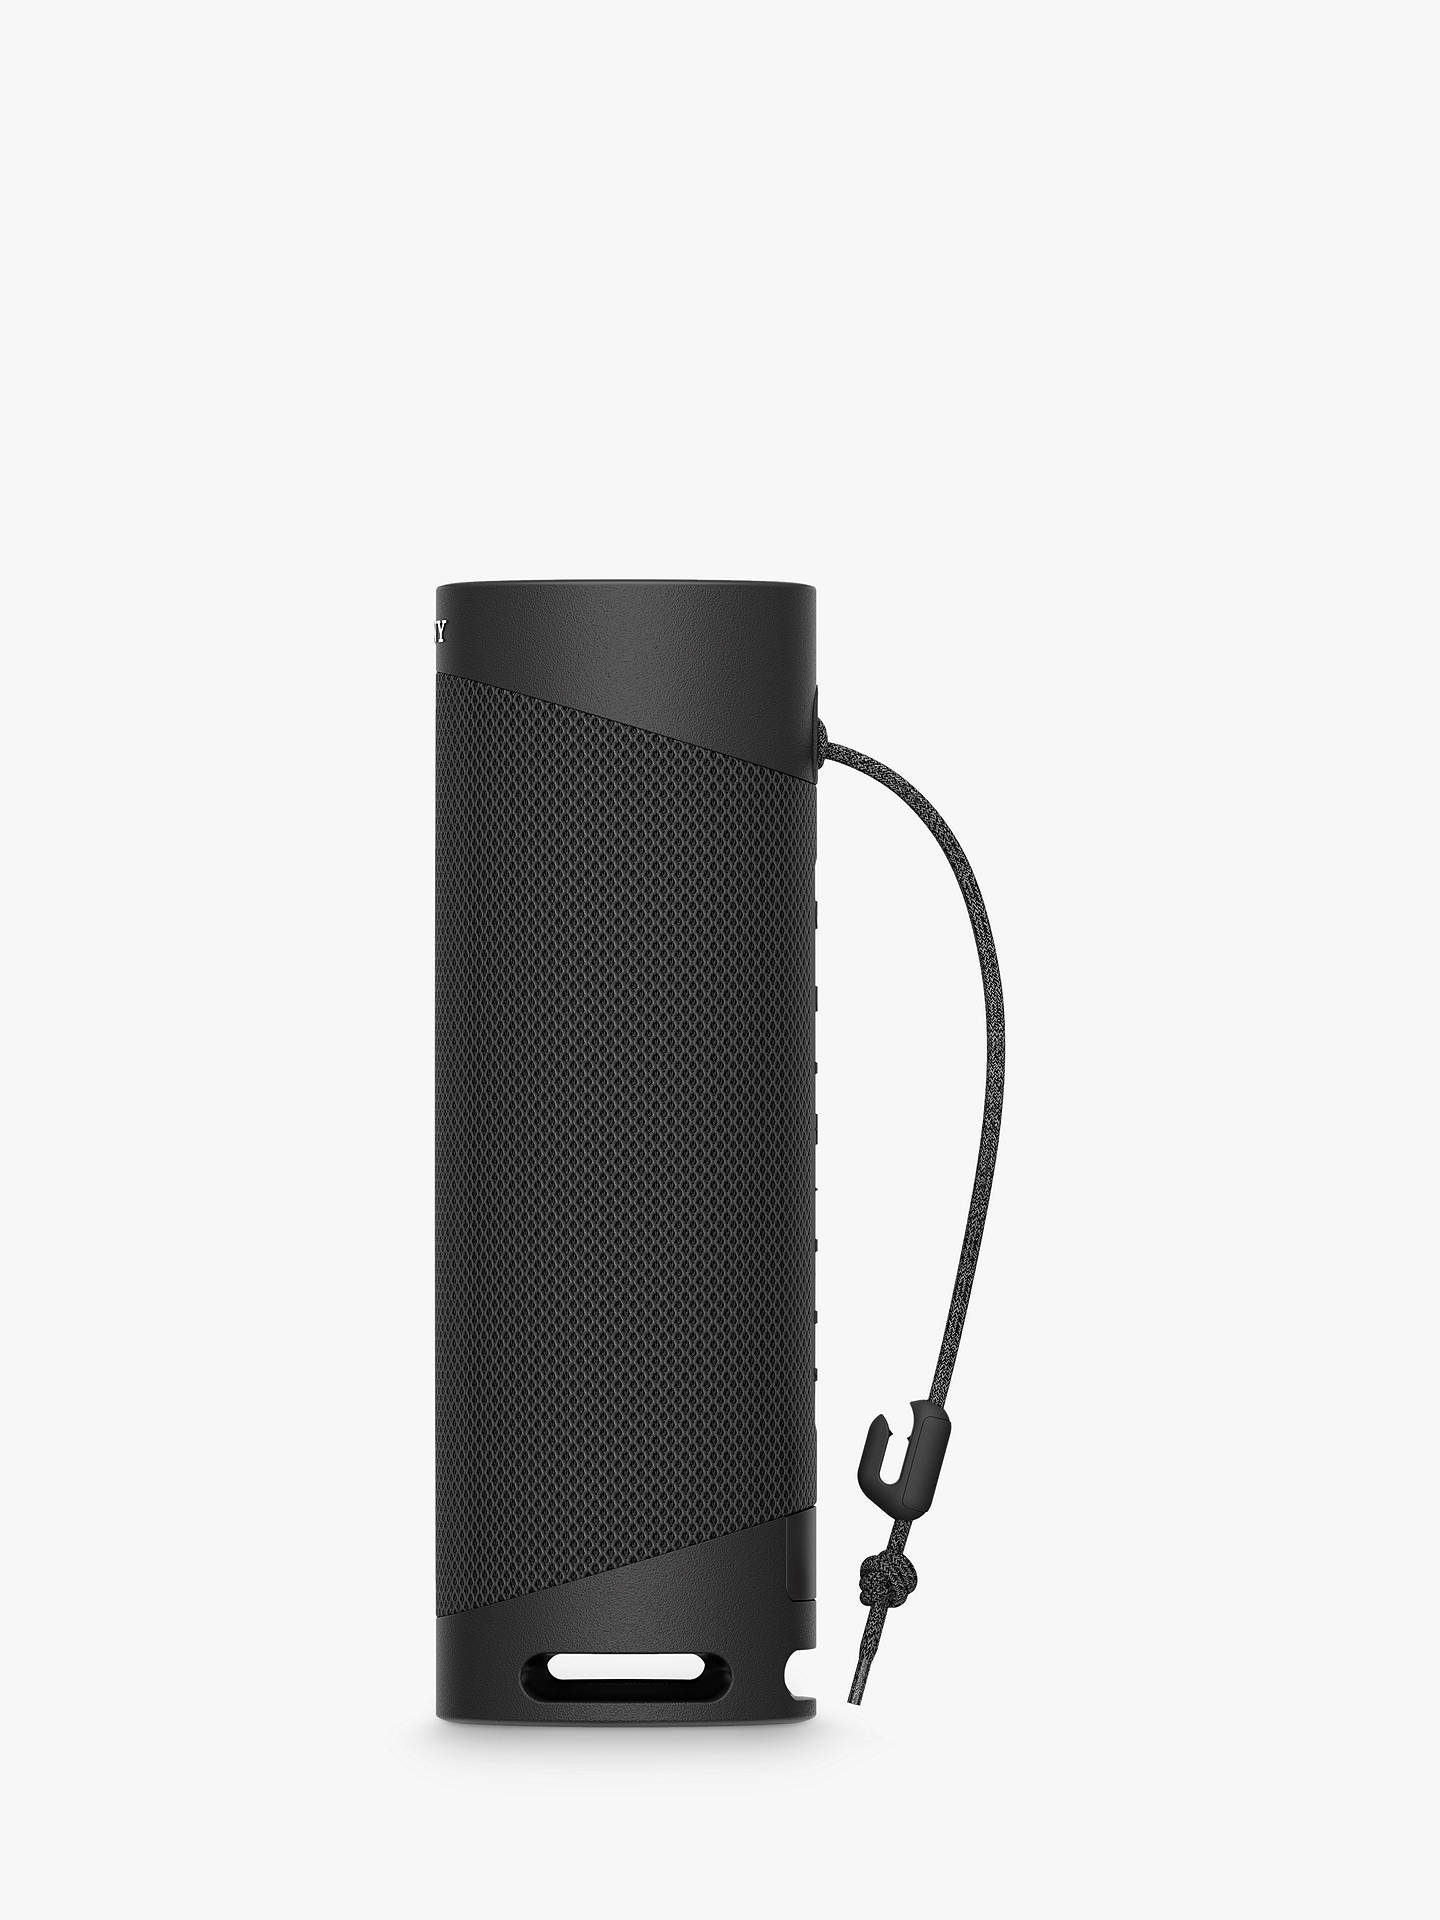 Buy Sony SRS-XB23 Extra Bass Waterproof Bluetooth Portable Speaker, Black Online at johnlewis.com